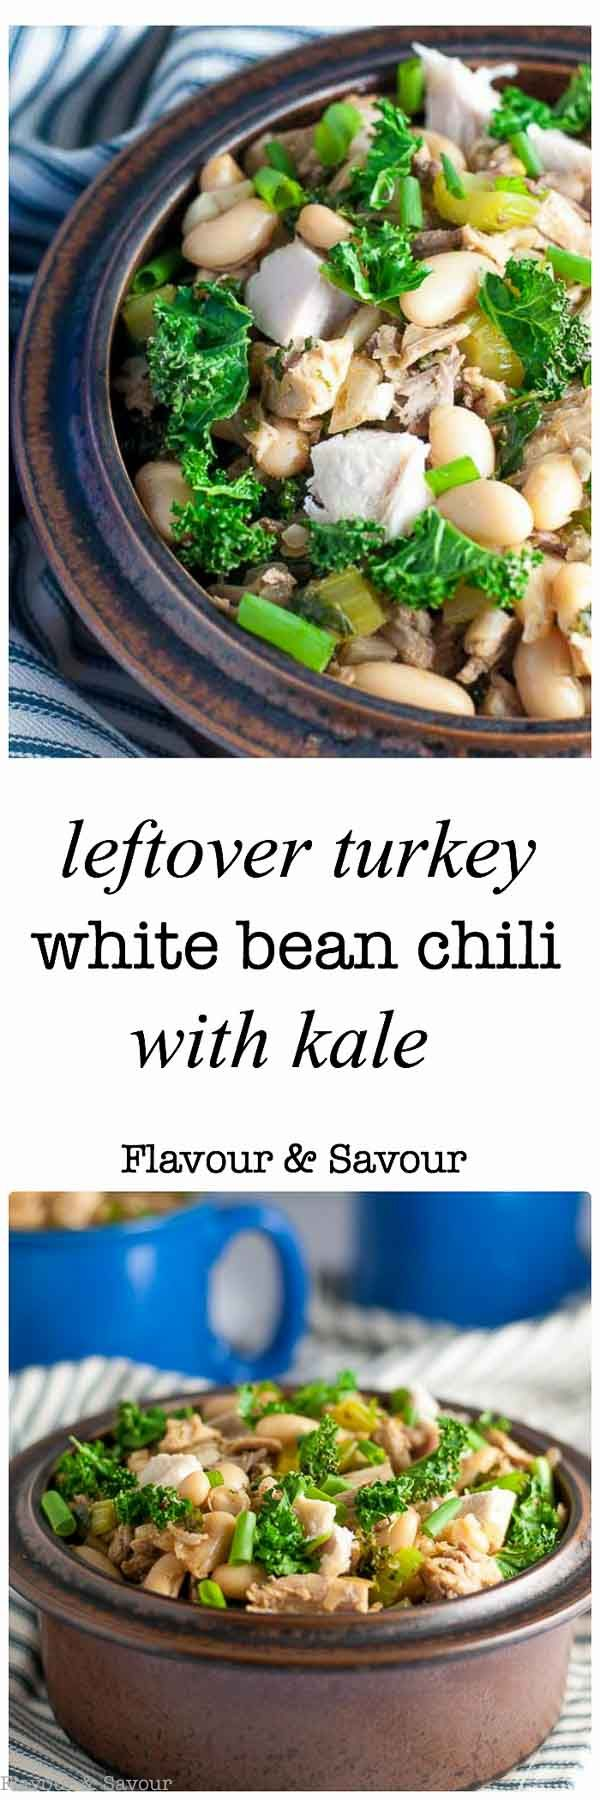 What to do with leftover turkey? Make this Easy Leftover Turkey White Bean Chili. Made with leftover turkey, white kidney beans (cannellini), and kale. via @enessman